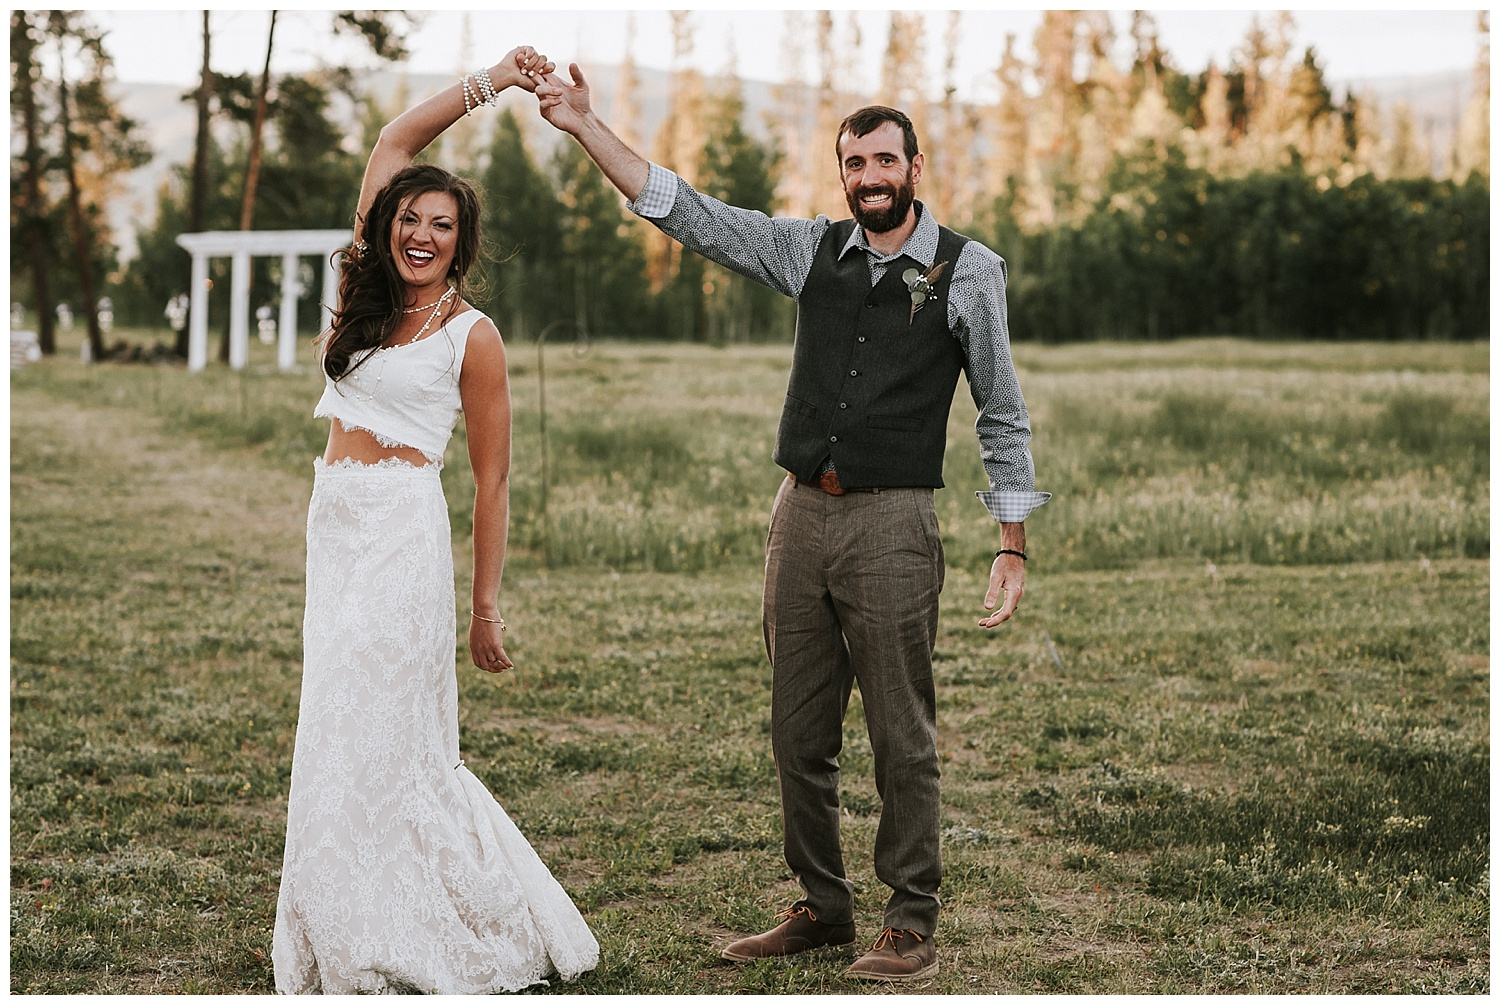 Fraser CO Wedding by Caitlin Steuben Photography.jpg